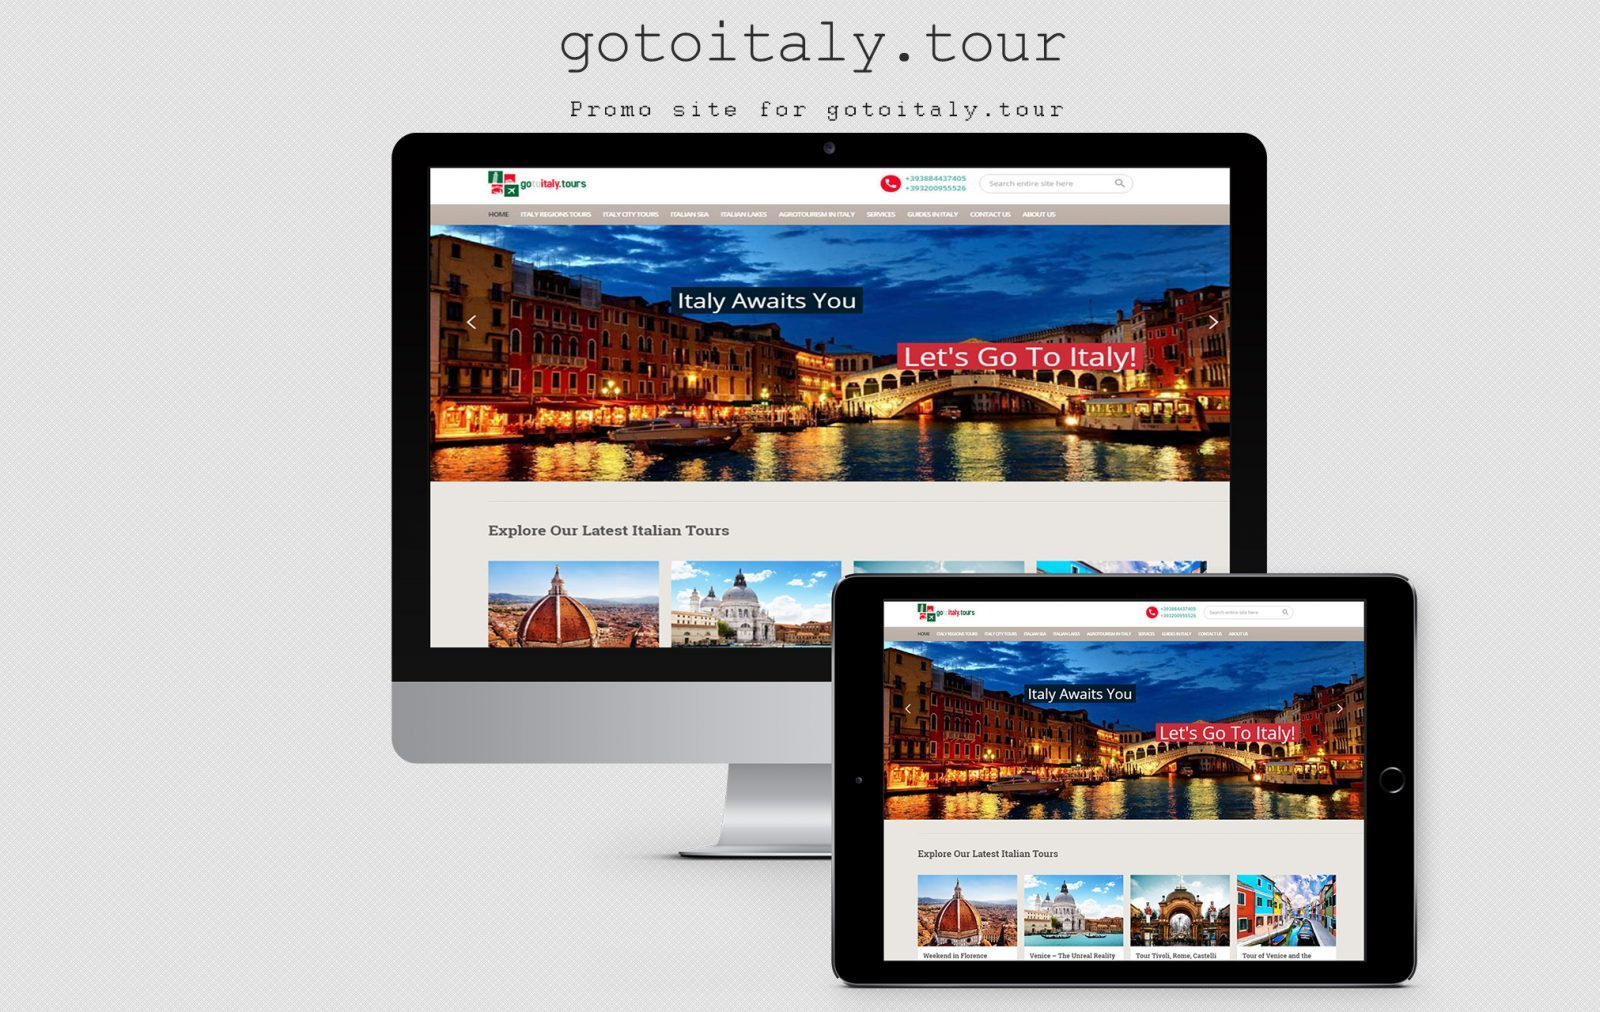 Travel portal - Go to Italy Tours